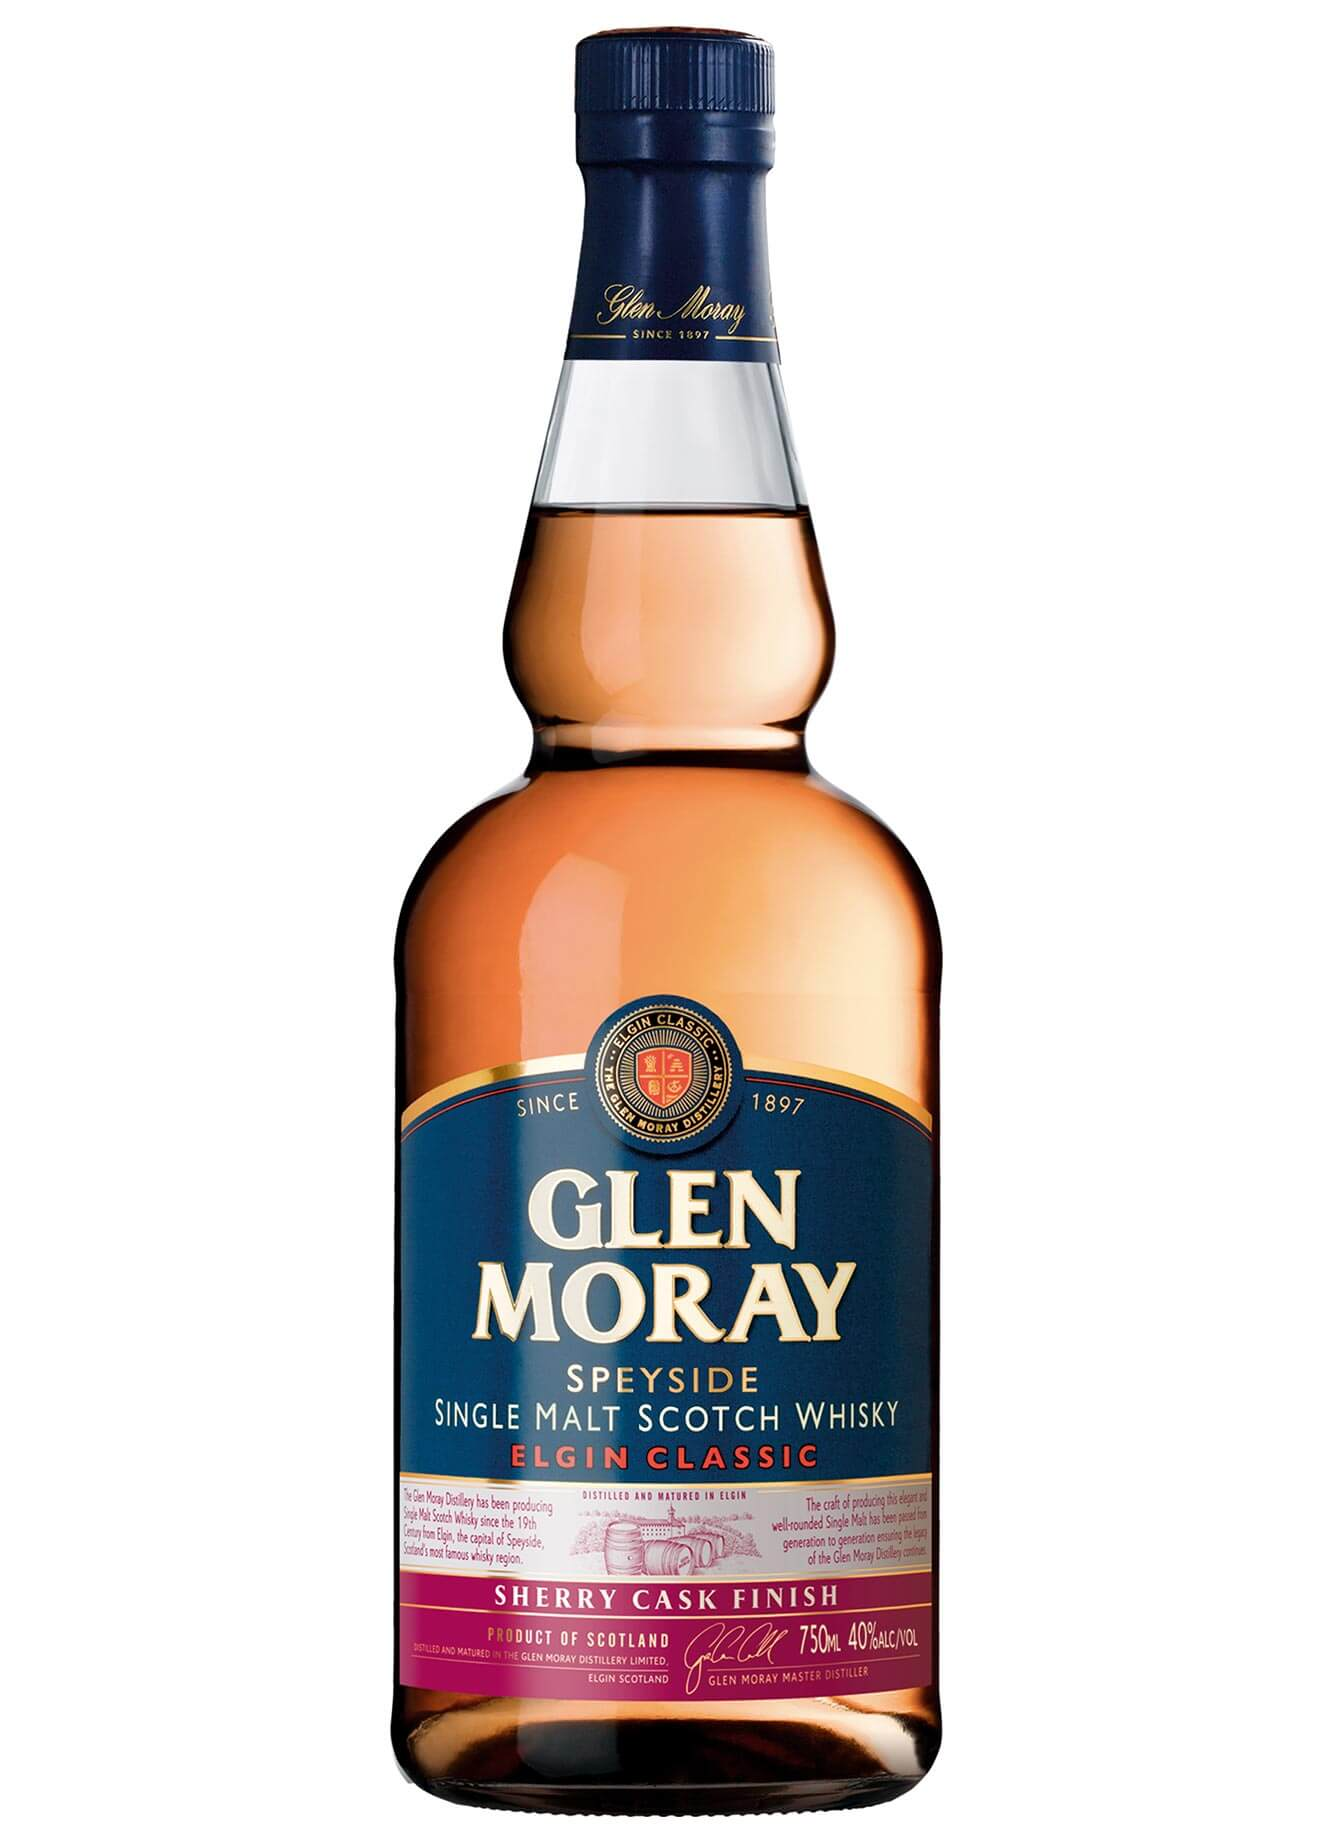 Glen Moray Classic Sherry Cask Finish, bottle on white